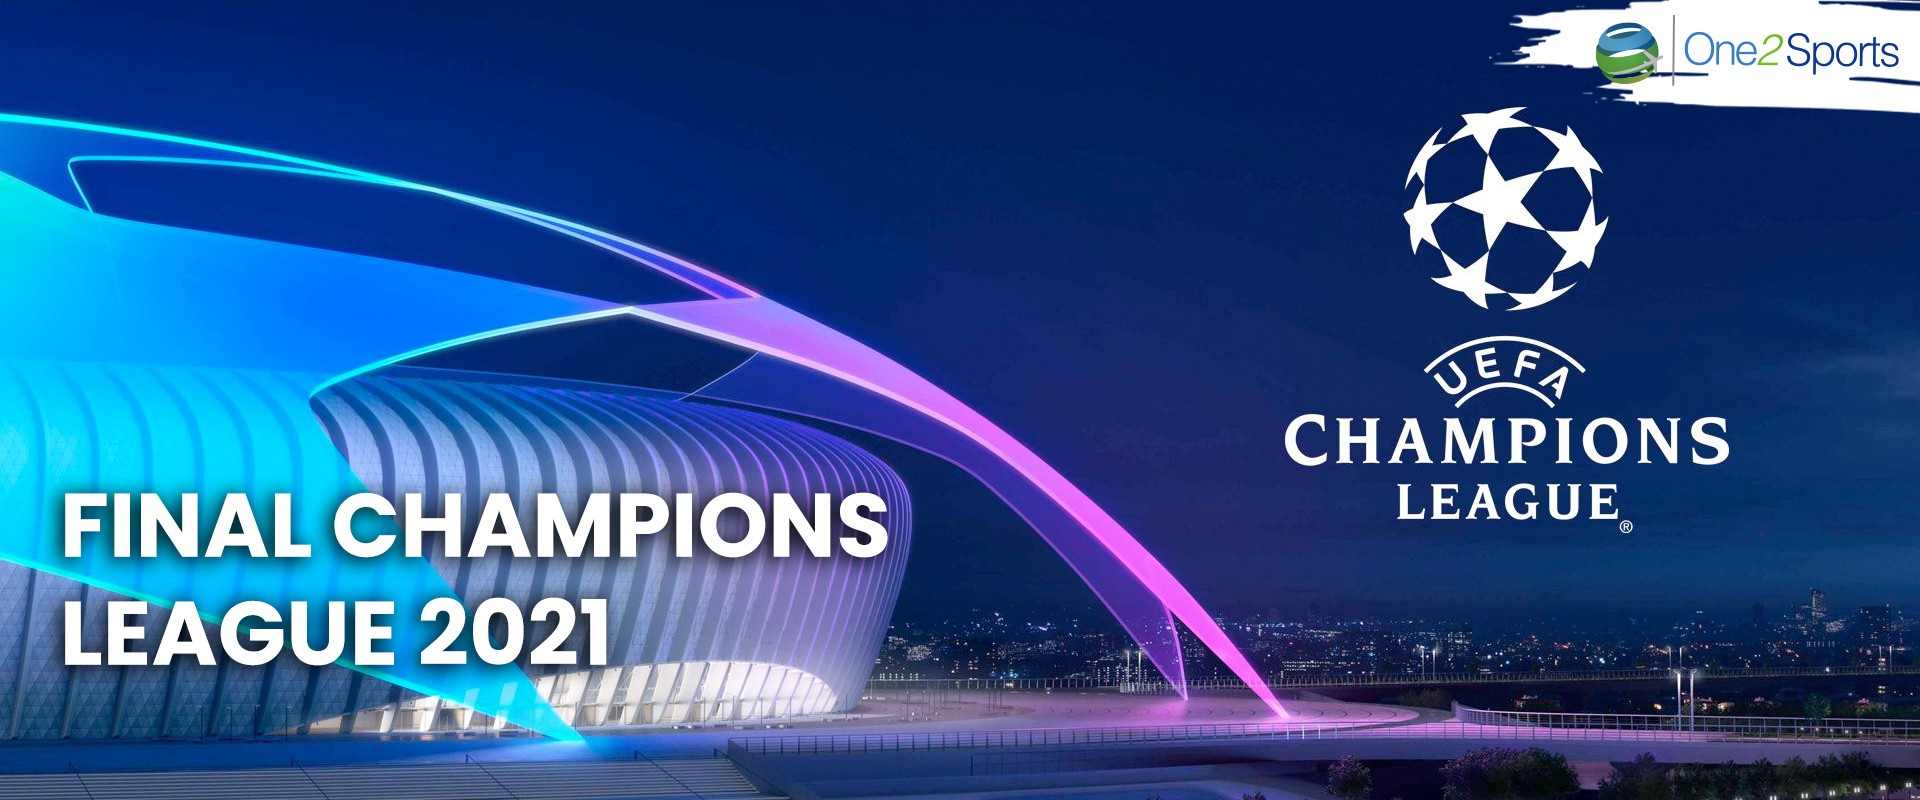 Final Champions League 2021 - 6 noches | One2 Travel Group